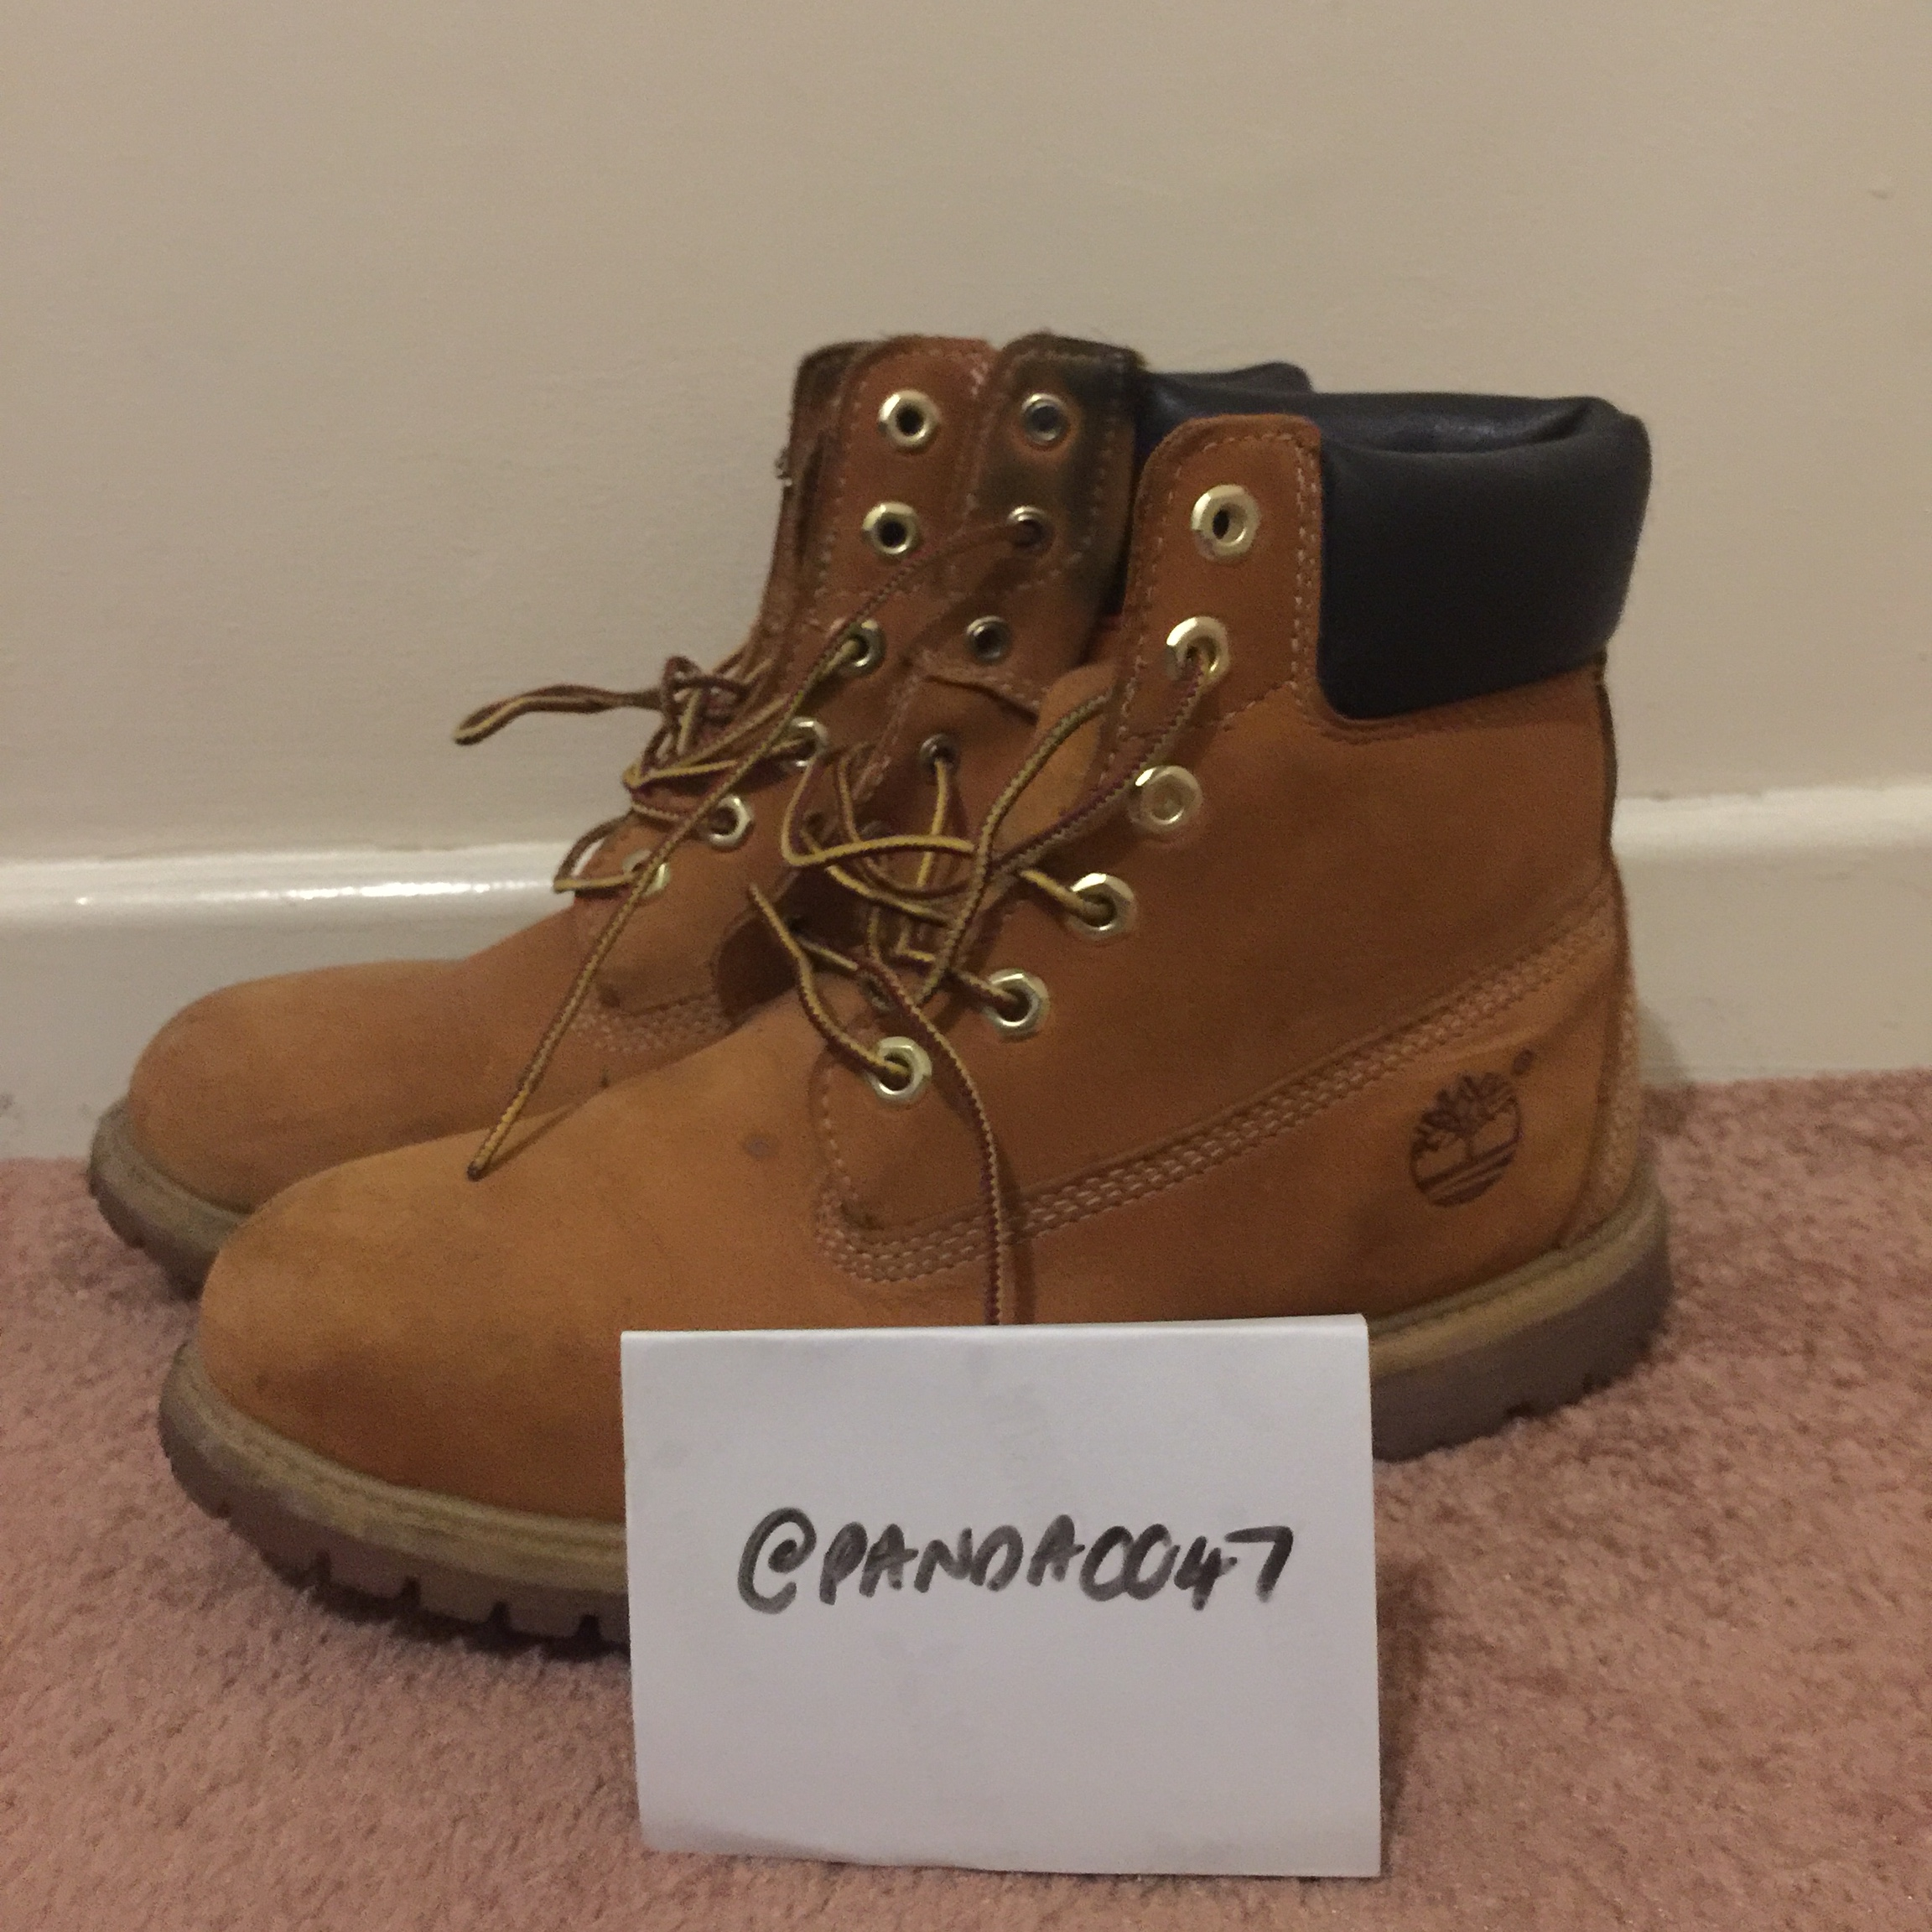 Timberland Old School Shoe, WORN. (OPEN TO OFFERS) Depop